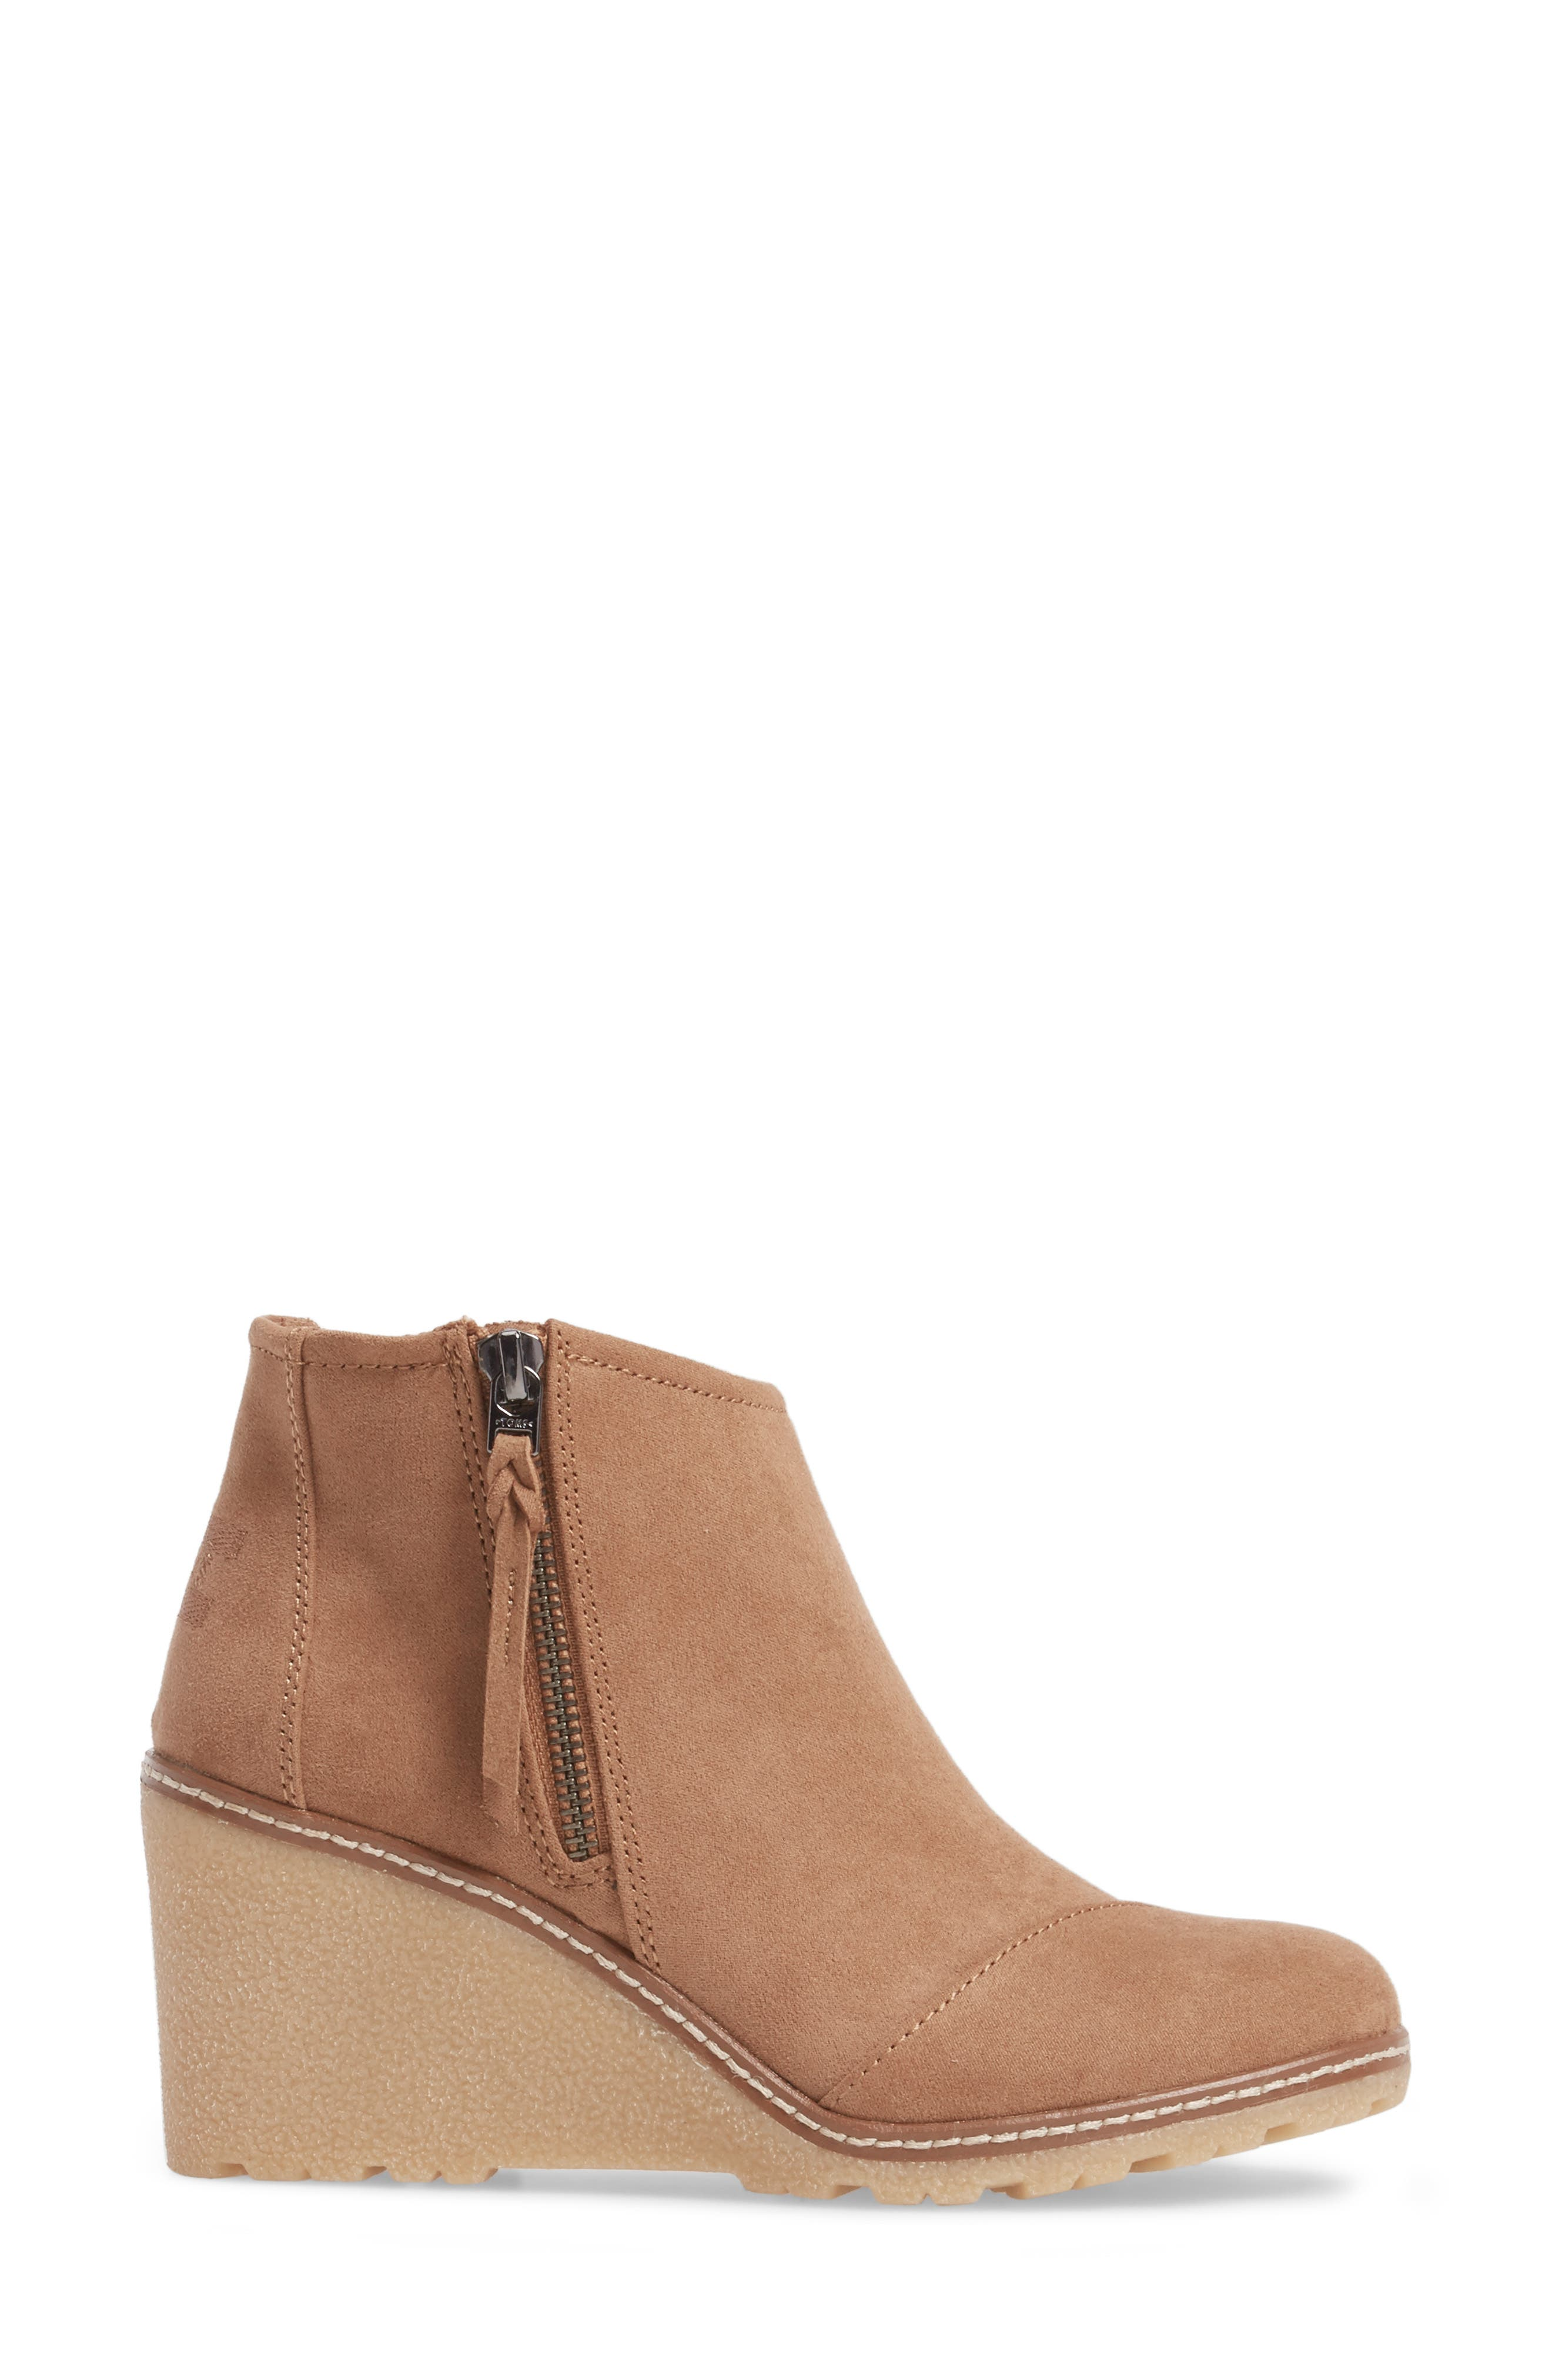 Avery Wedge Bootie,                             Alternate thumbnail 11, color,